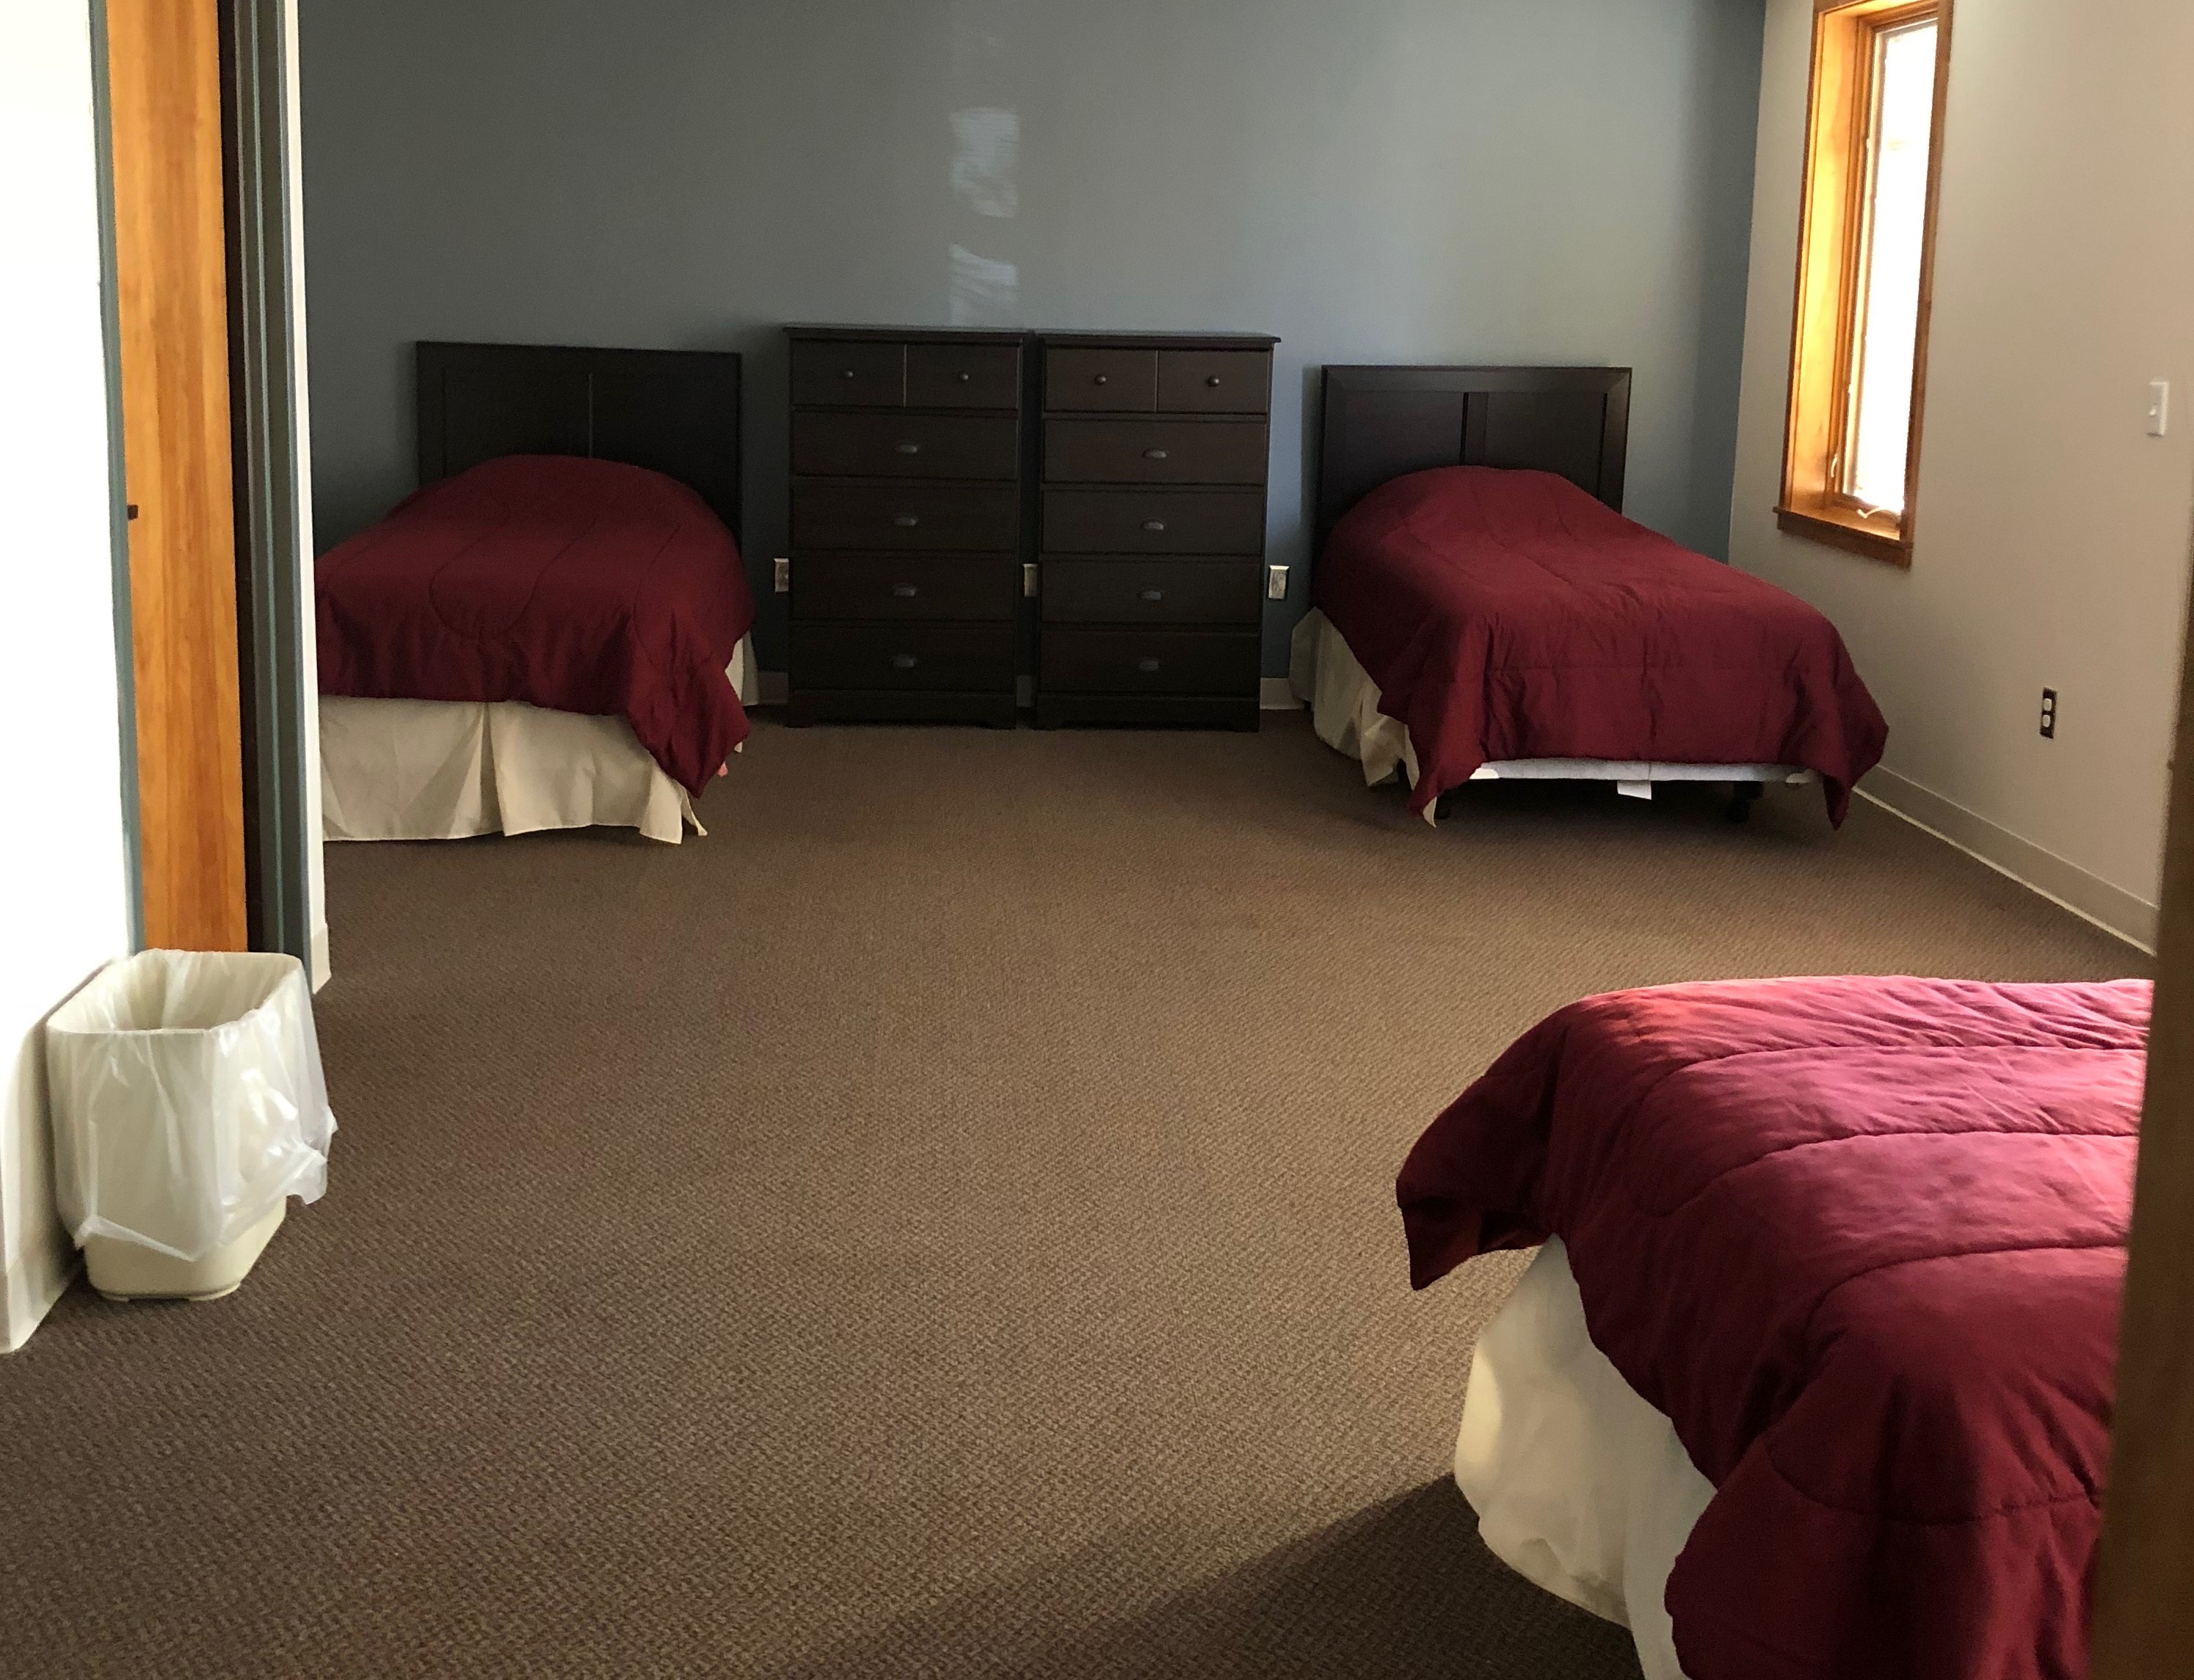 A dorm room with triple occupancy. Two beds with headboard agains one wall and two 5 drawer dressers between them. The third bed set on other side of the room with headboard against the opposite wall.